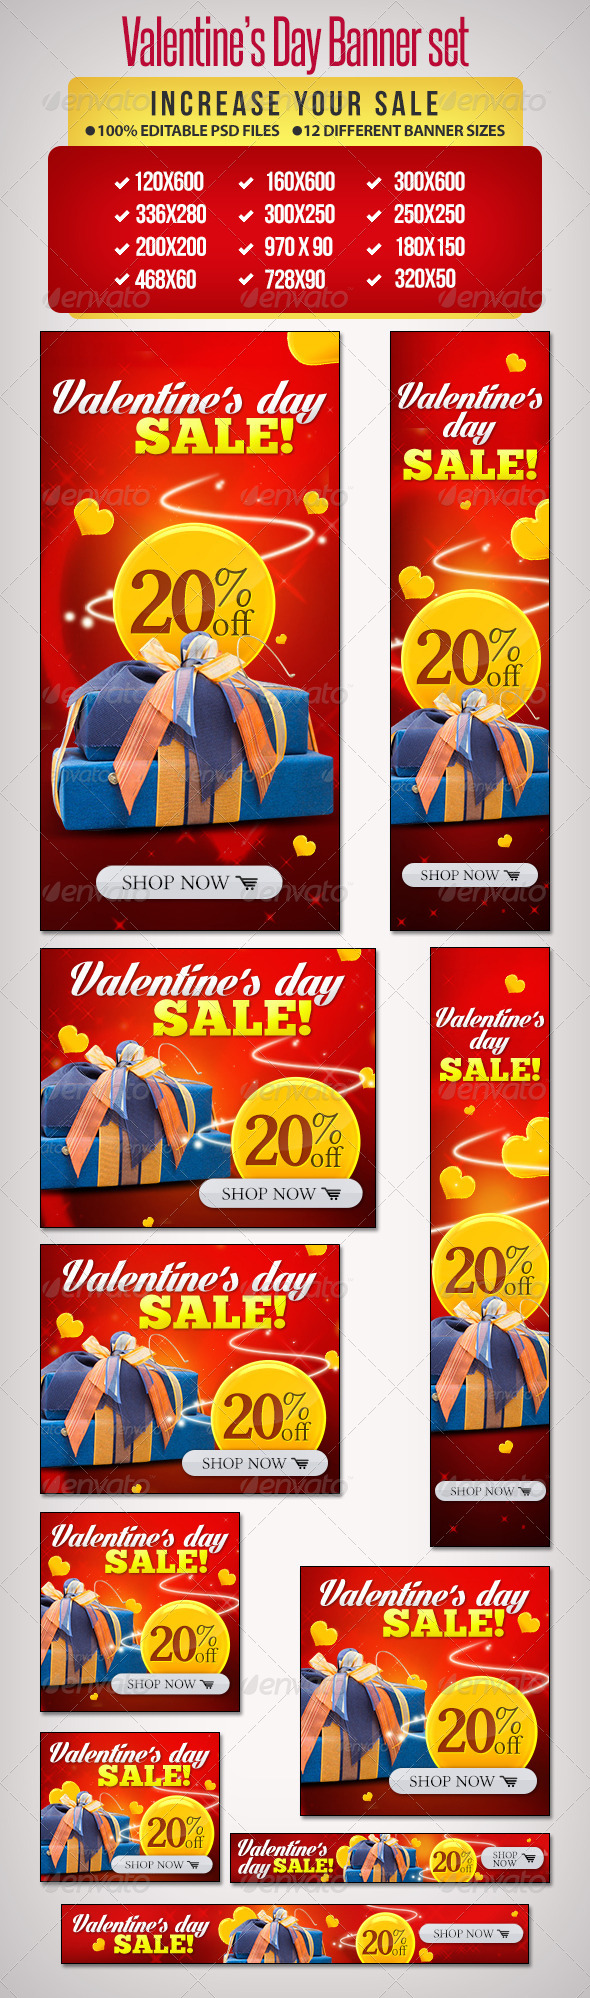 Valentine's Day Banner Set 8 - Banners & Ads Web Elements